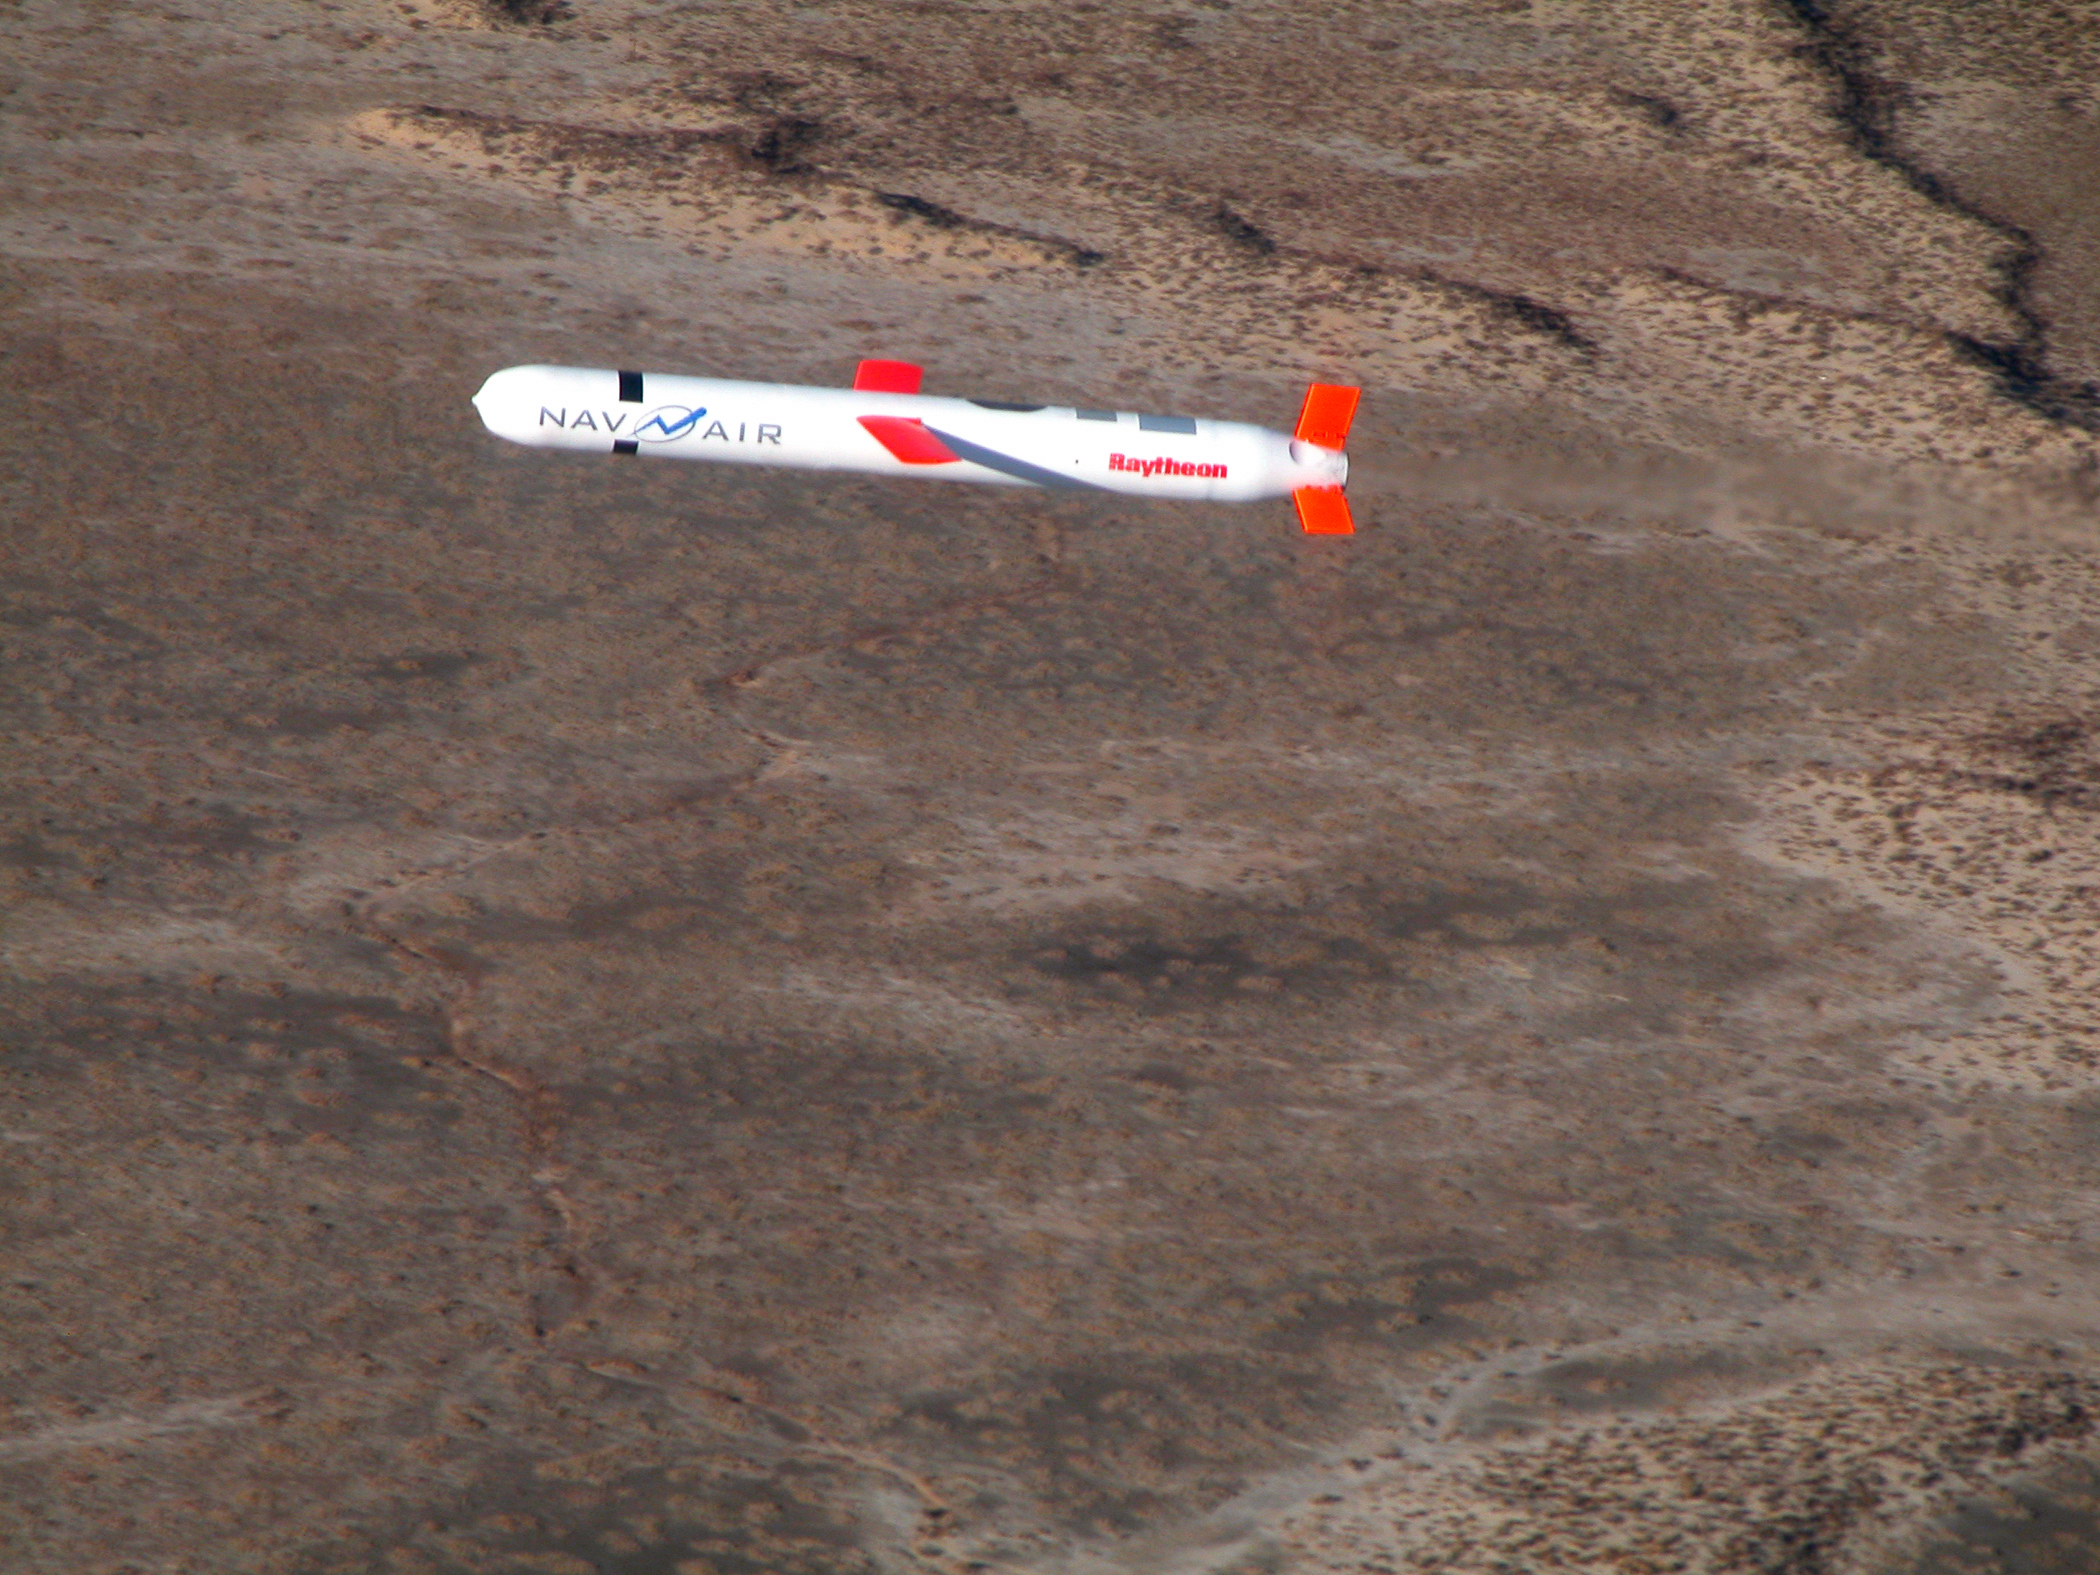 Syrian Airfield Strike: What Is a Tomahawk Land Attack Missile?